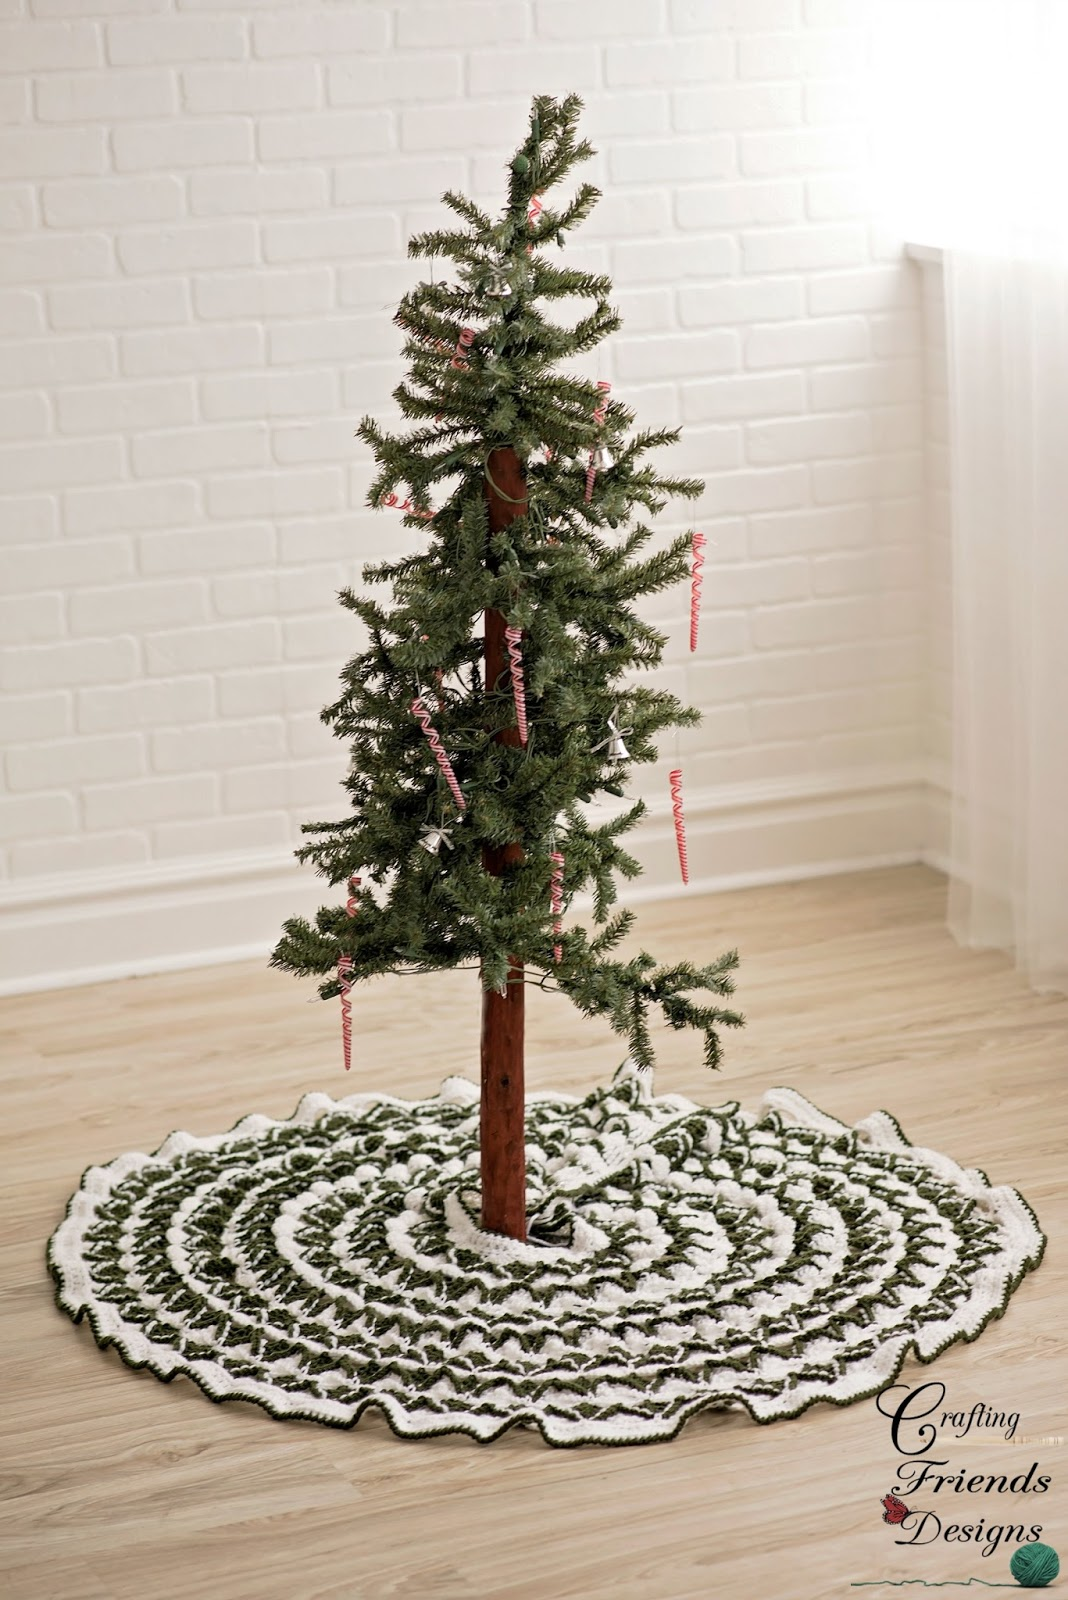 Crafting Friends Designs Christmas Pine Tree Skirt Free Crochet Pattern